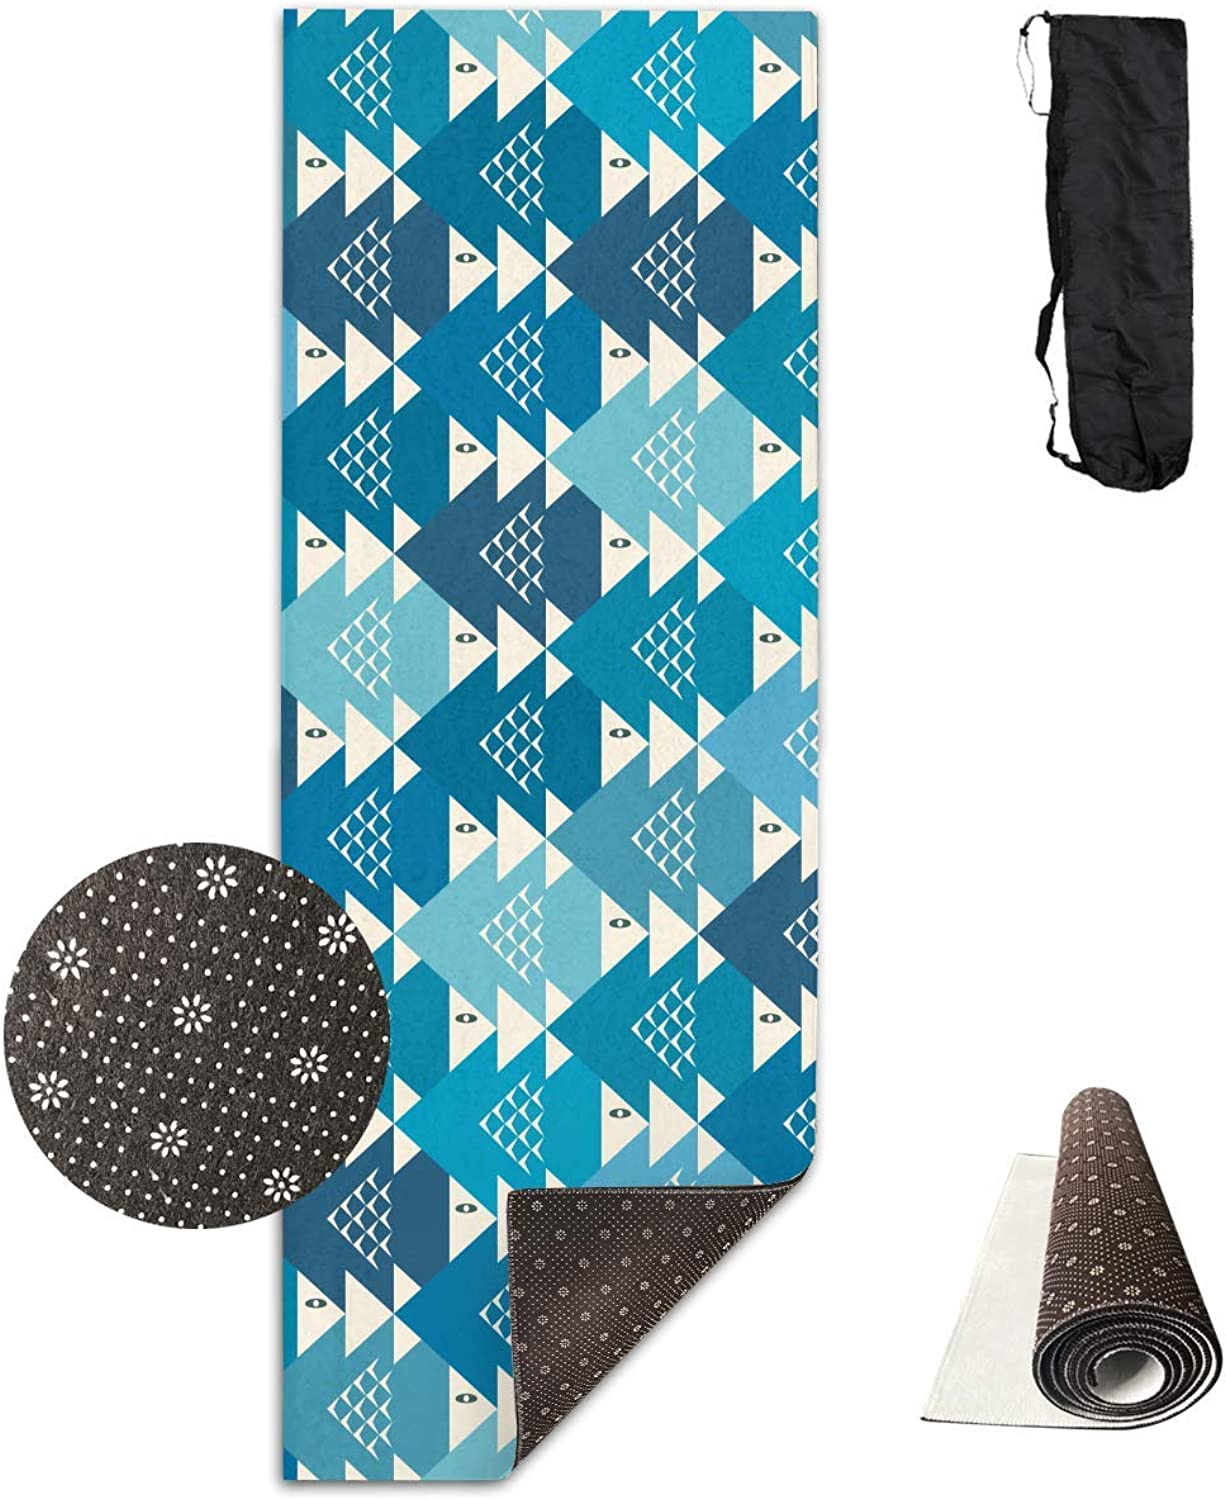 blueee Geometric Polygonal Triangle Pattern Yoga Mat  Advanced Yoga Mat  NonSlip Lining  Easy to Clean  LatexFree  Lightweight and Durable  Long 180 Width 61cm